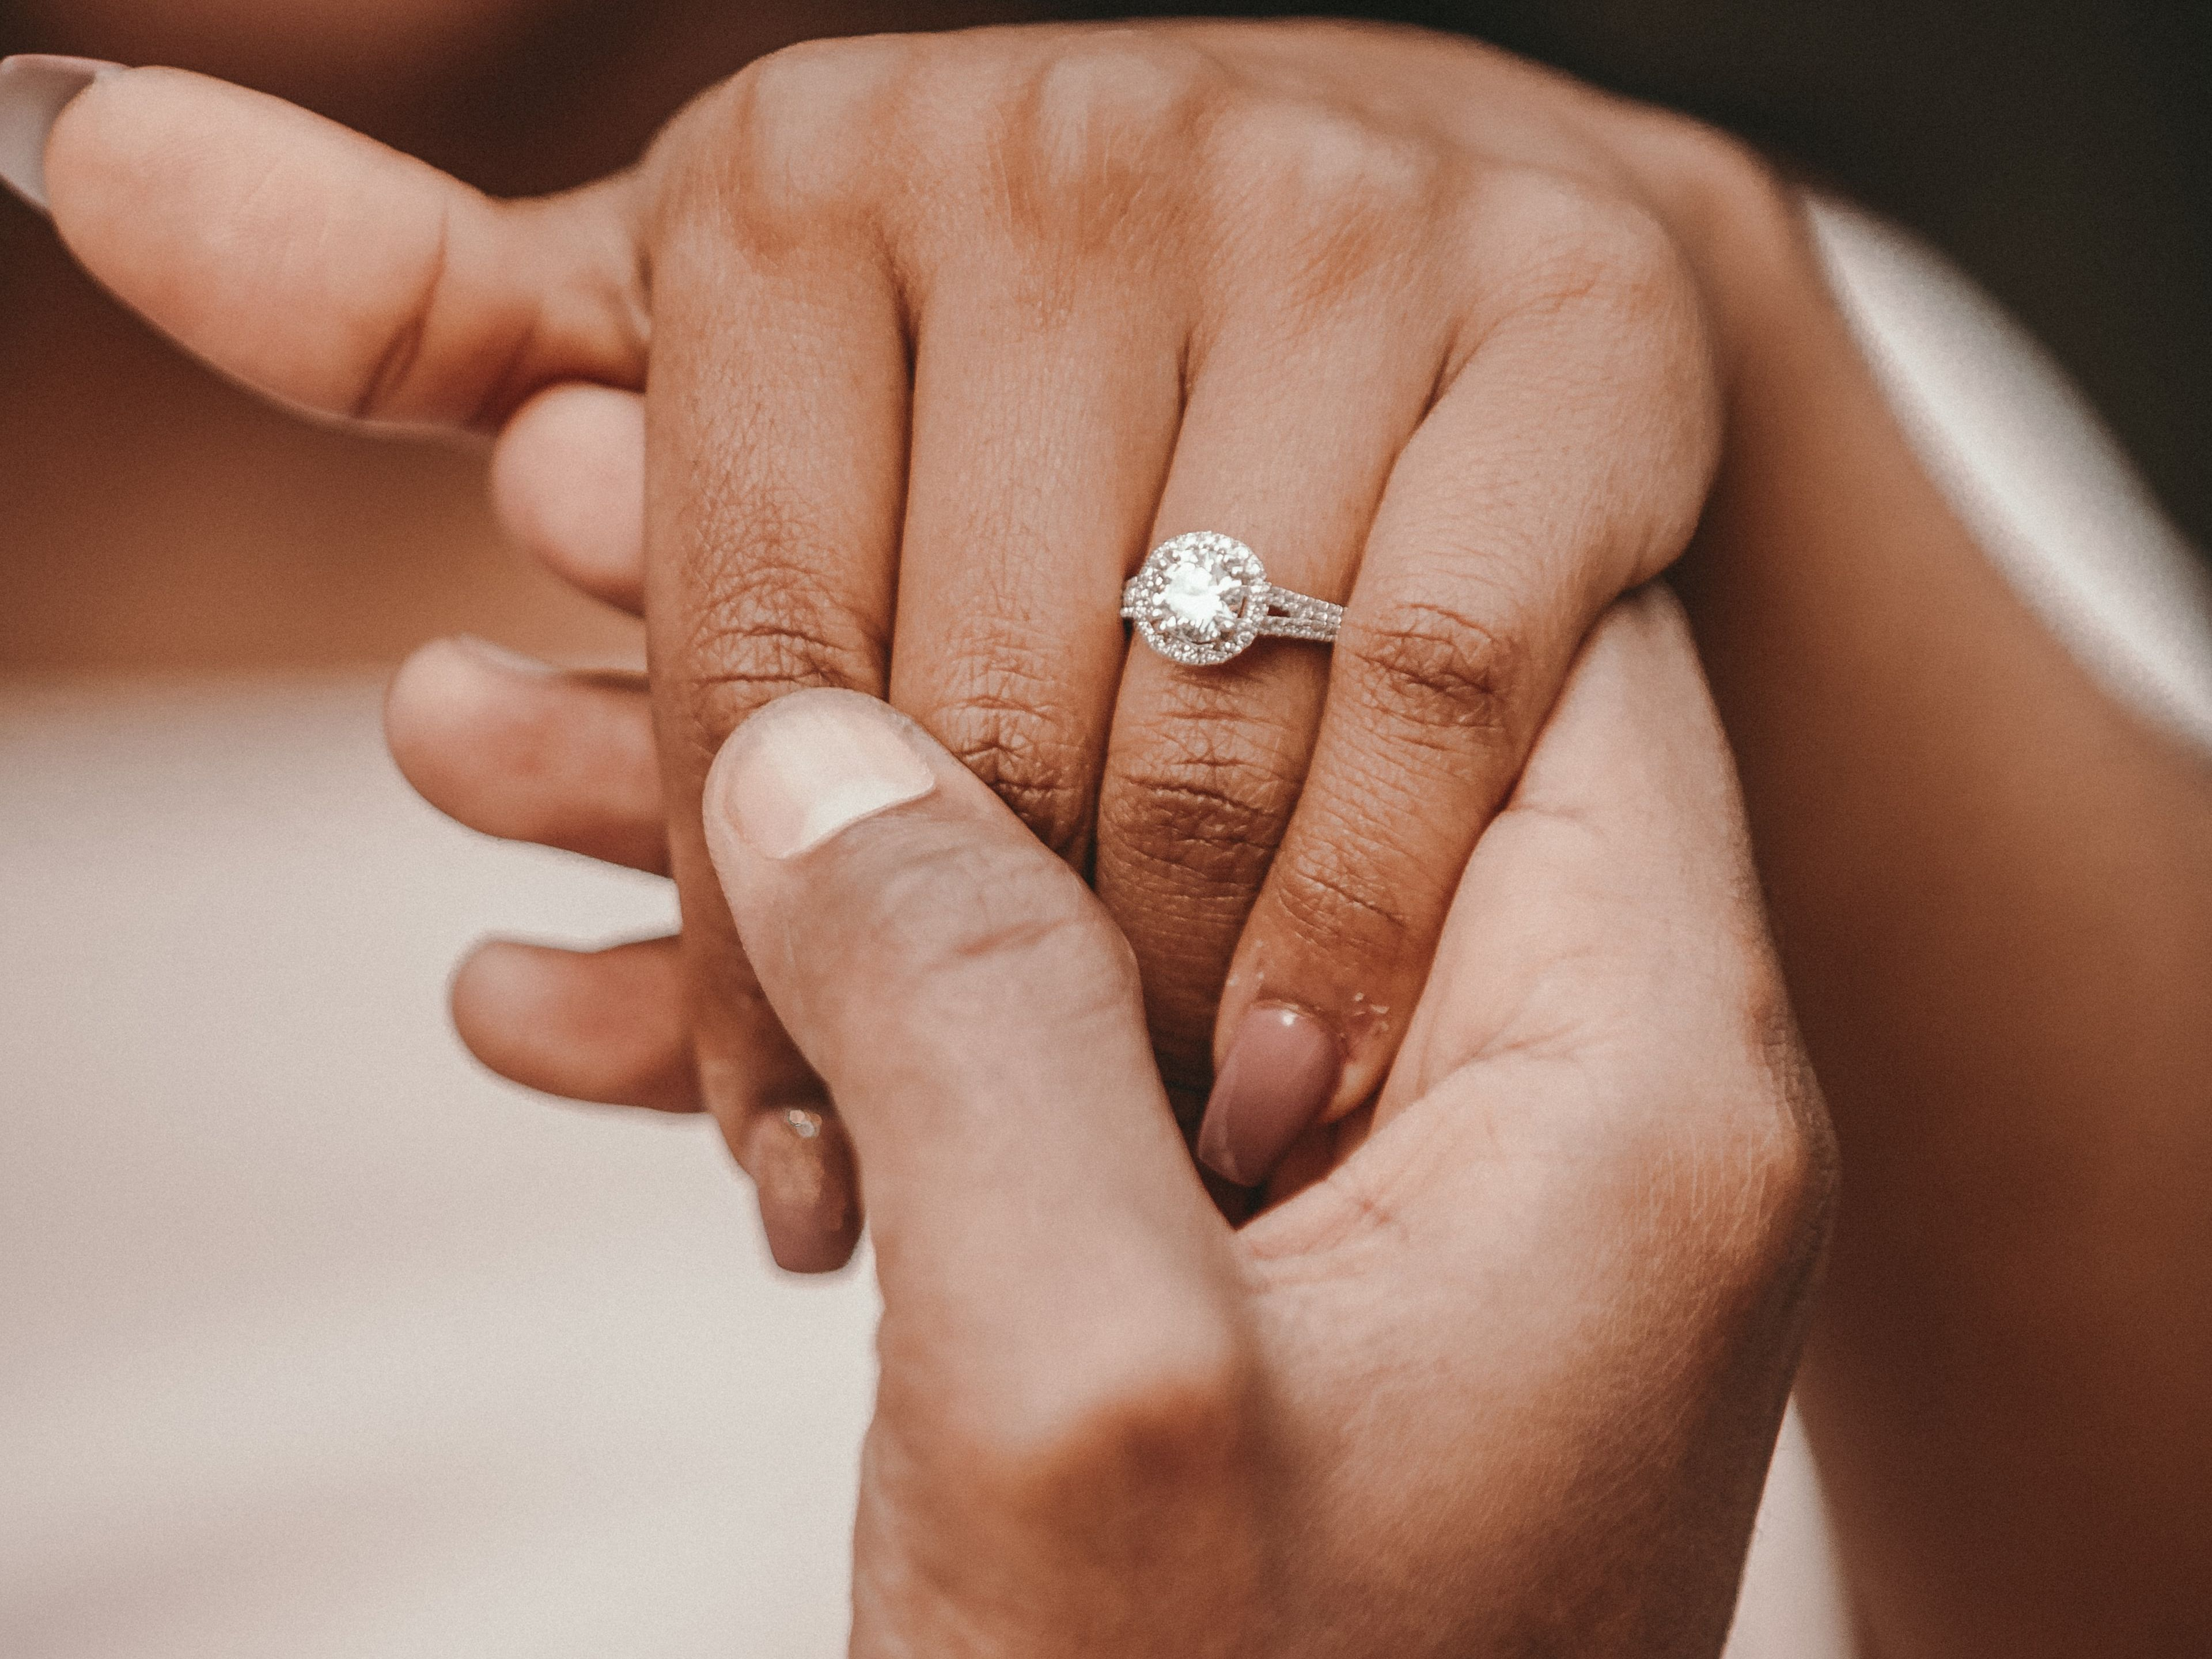 Solutions to early marriage